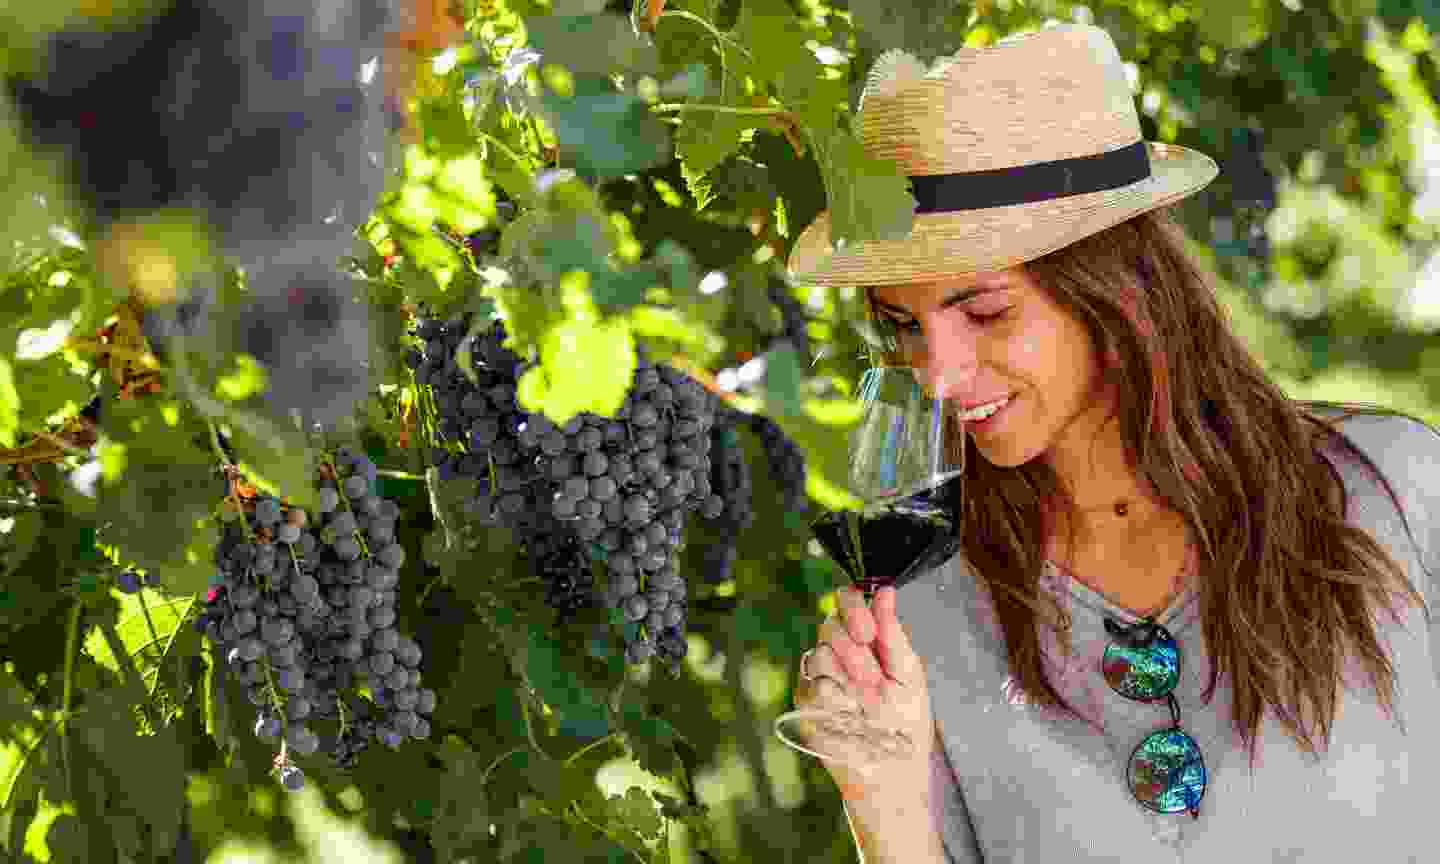 Visit a family-owned vineyard (Jacopo Salvi/ Garda Trentino S.P.A.)